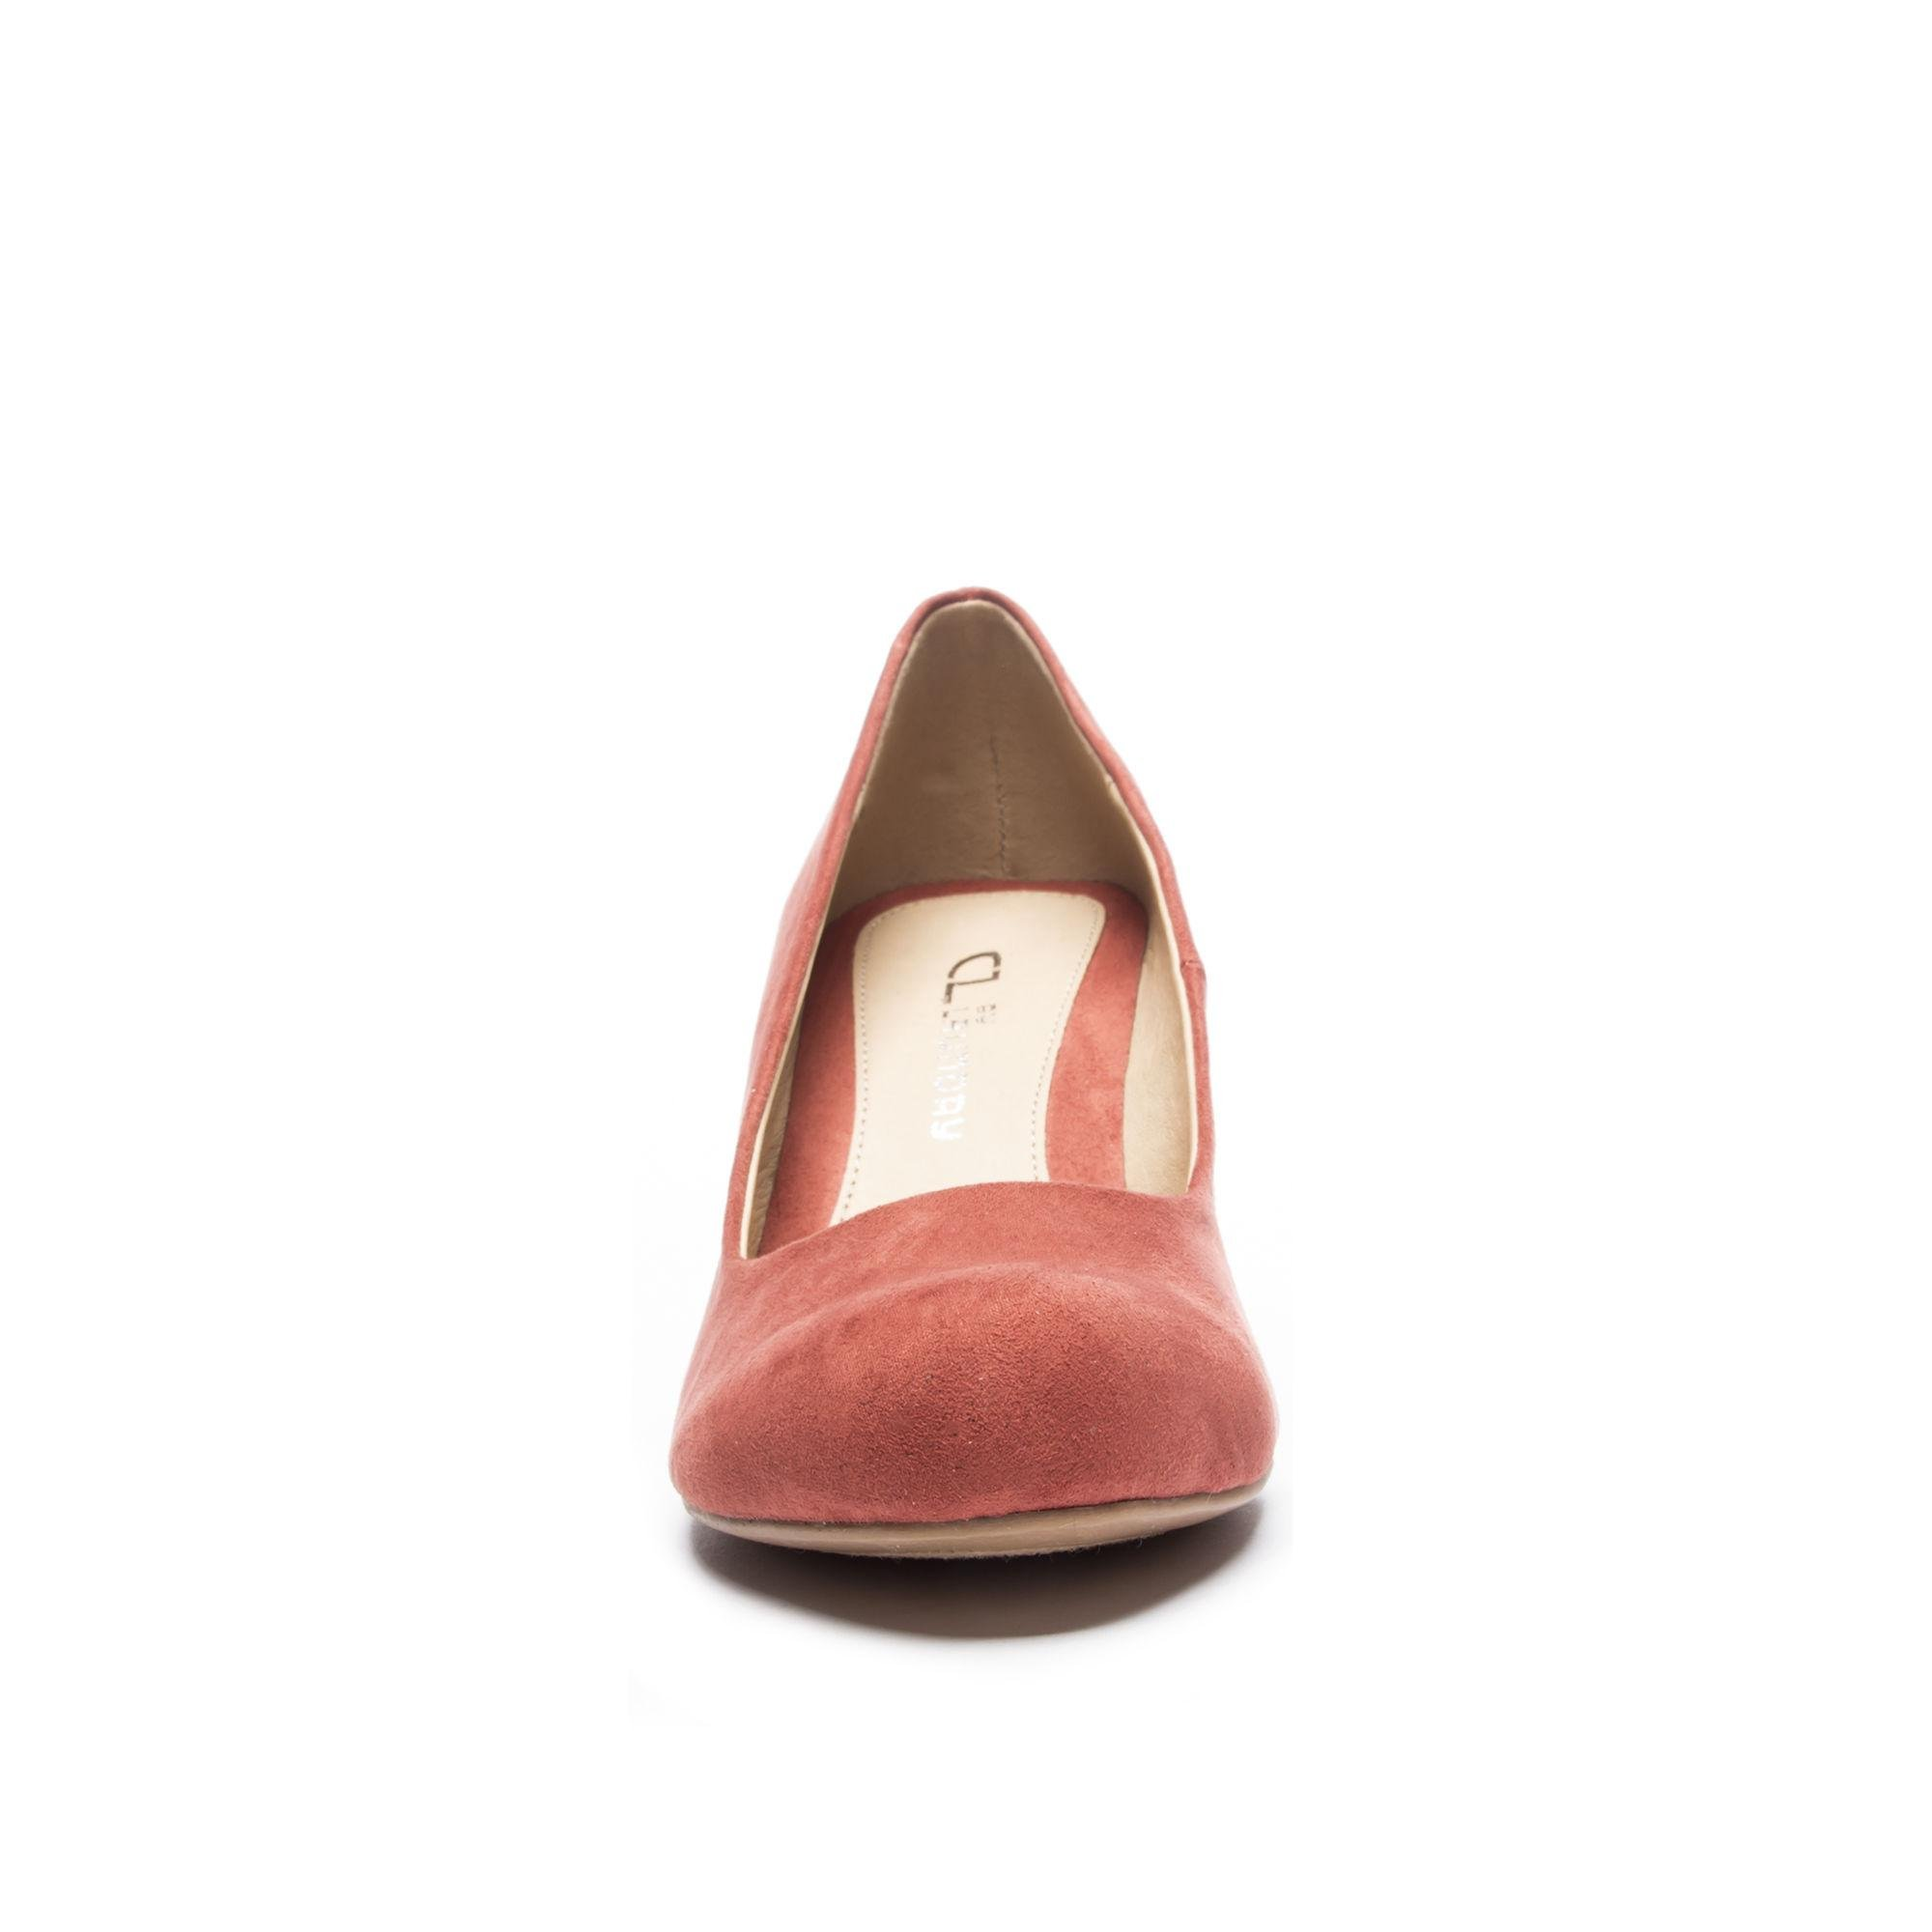 dd1f997cd09 Lyst - Chinese Laundry Nima Wedge Pump in Red